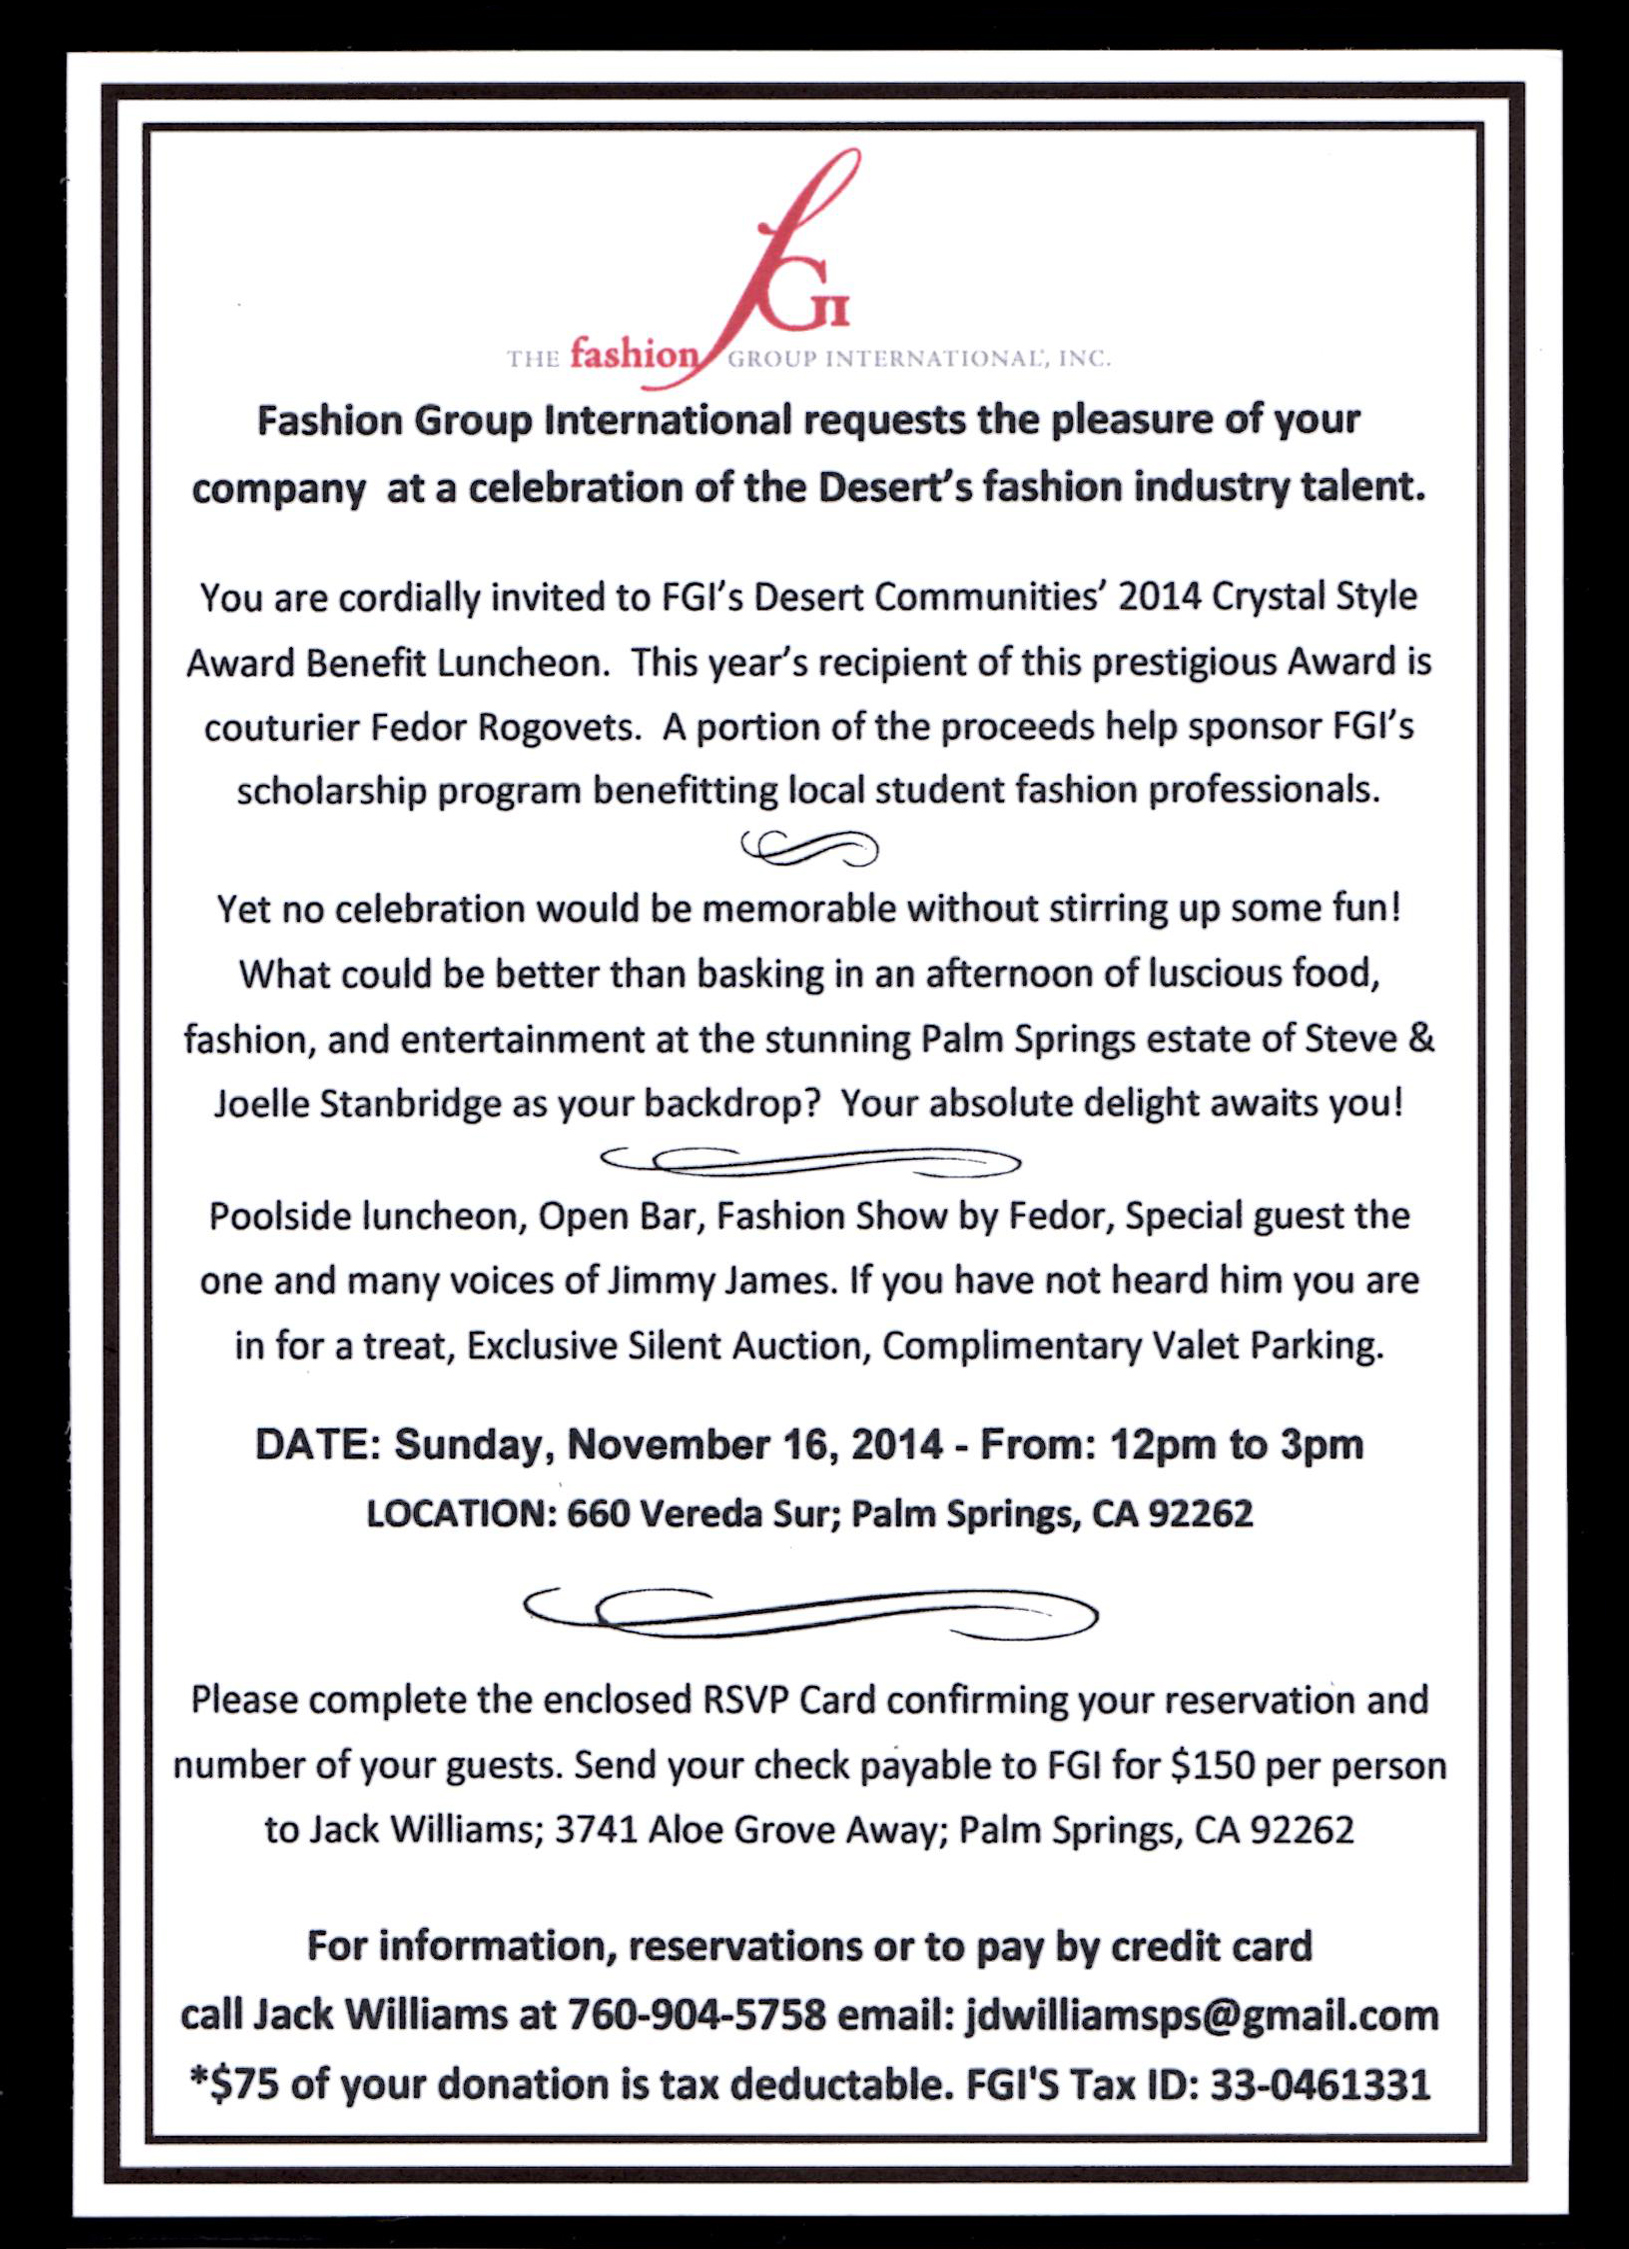 Crystal style event invite